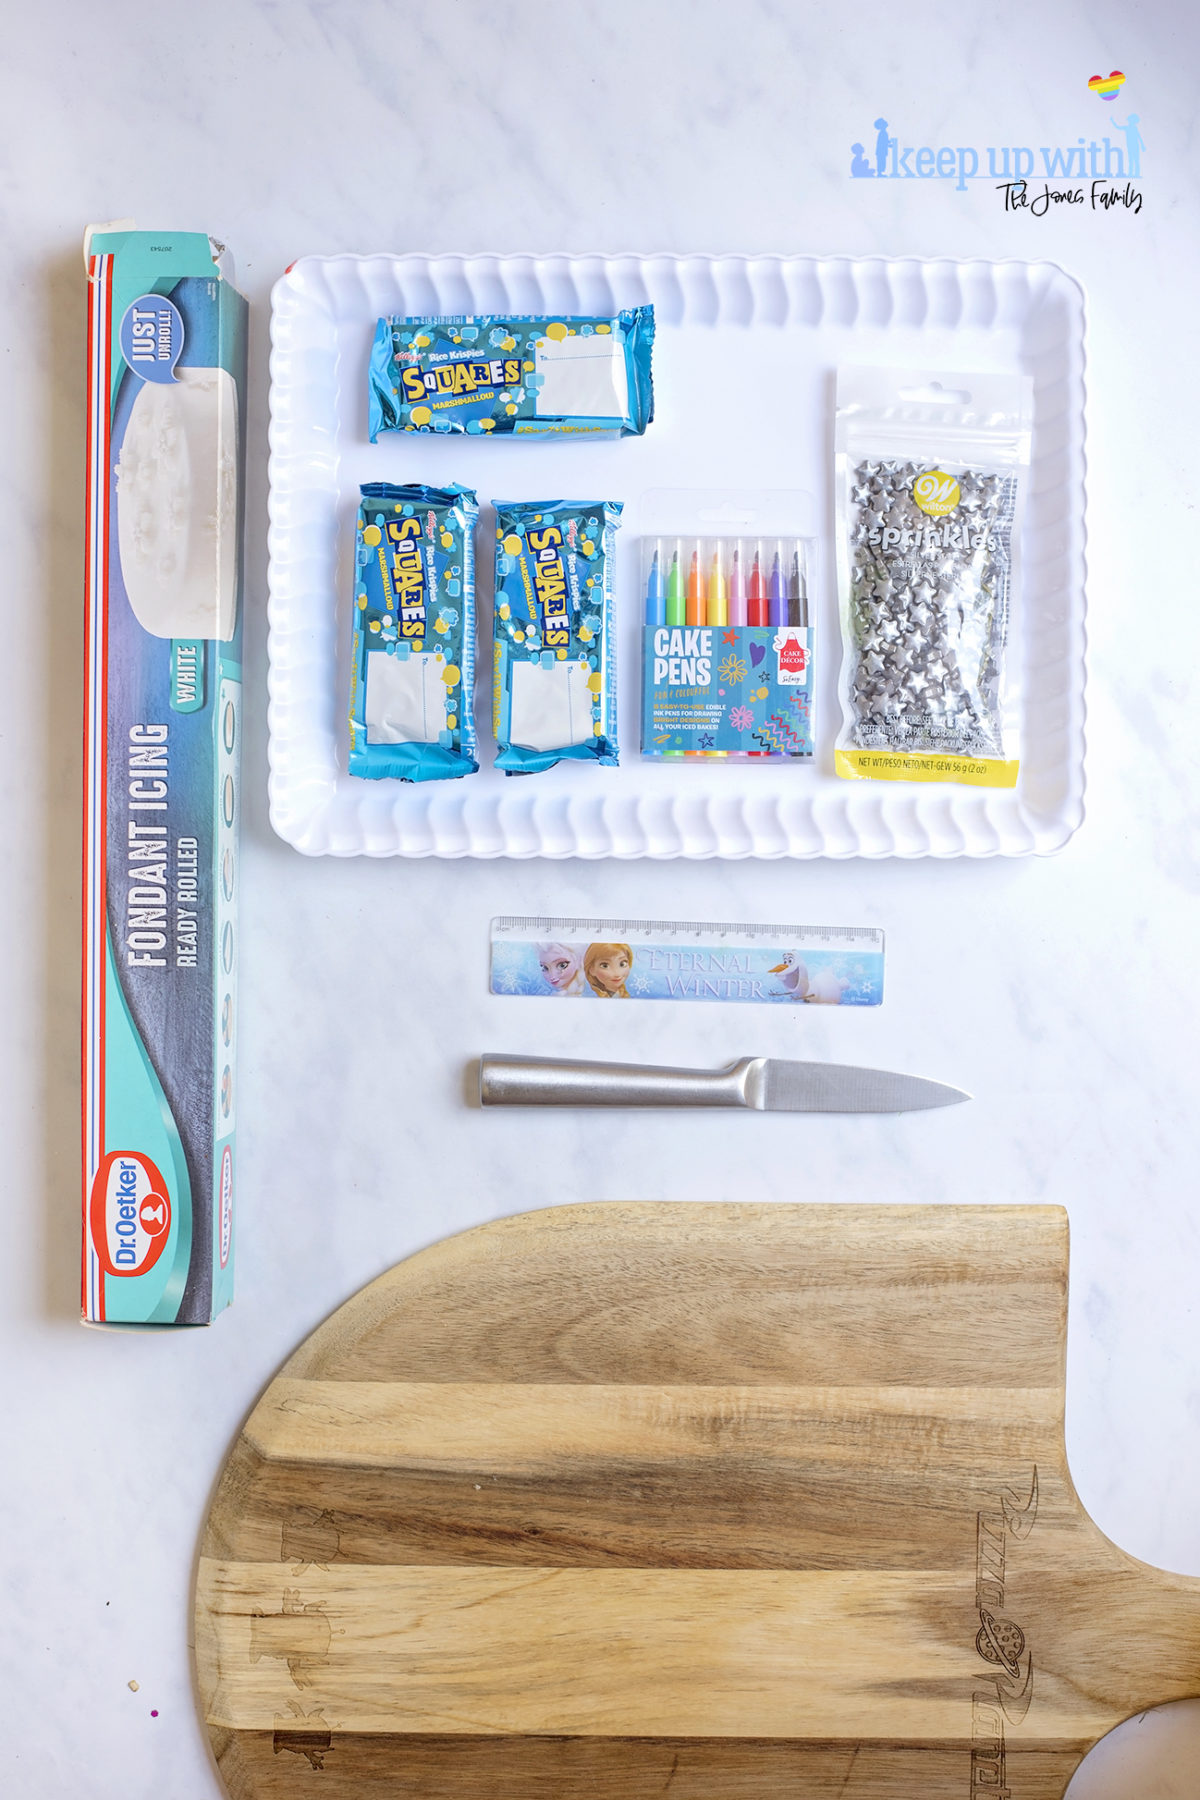 Image shows ingredients for Back to School Rice Krispie treats on a white scalloped tray, sitting on a white marble surface. There are Rice Krispies Squares Bars, sprinkles, white pre-rolled royal icing fondant, cake pens, a ruler, knife and shopping board. Image by Sara-Jayne from Keep Up With The Jones Family.